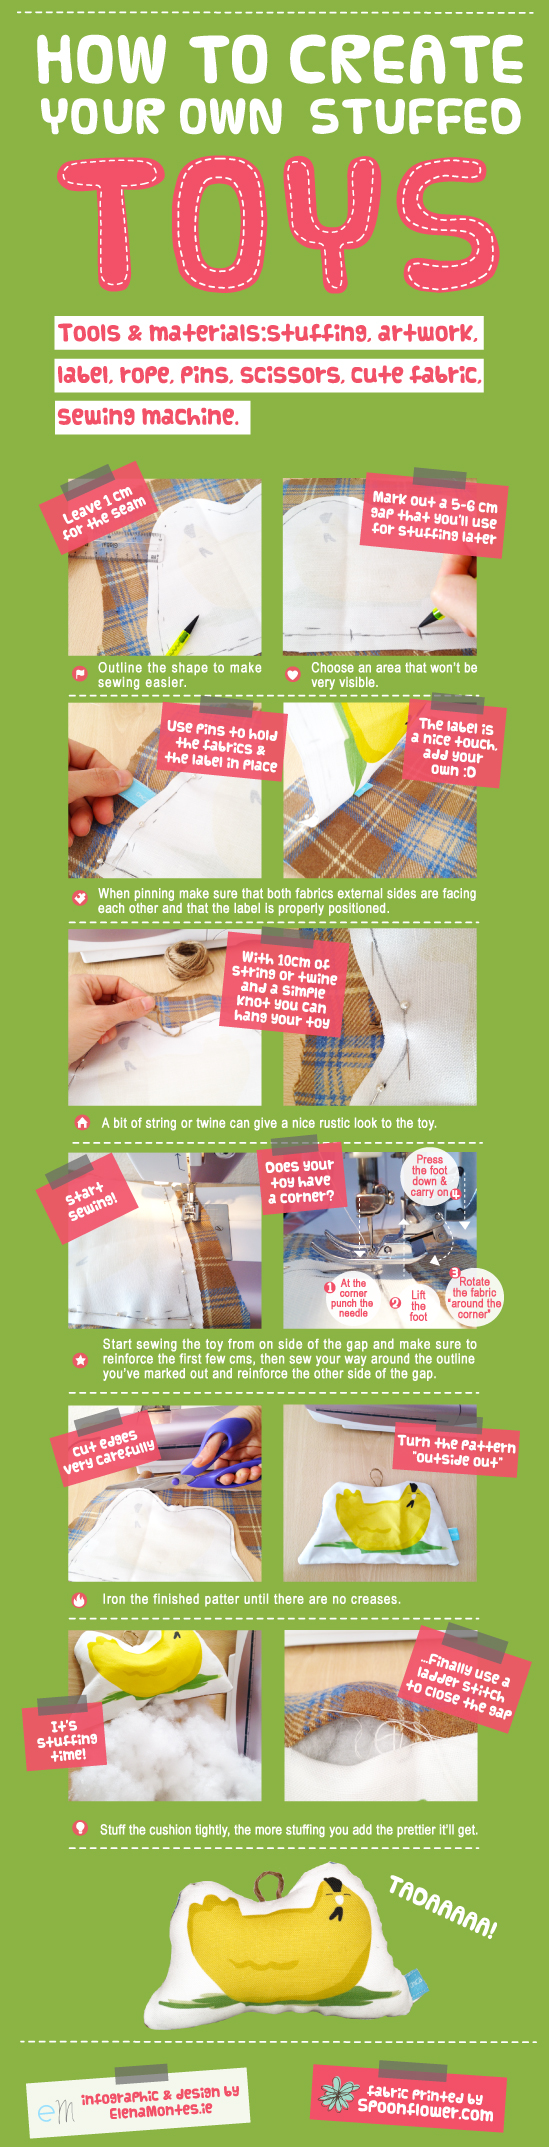 Infographic How to Create Your Own Stuffed Toys